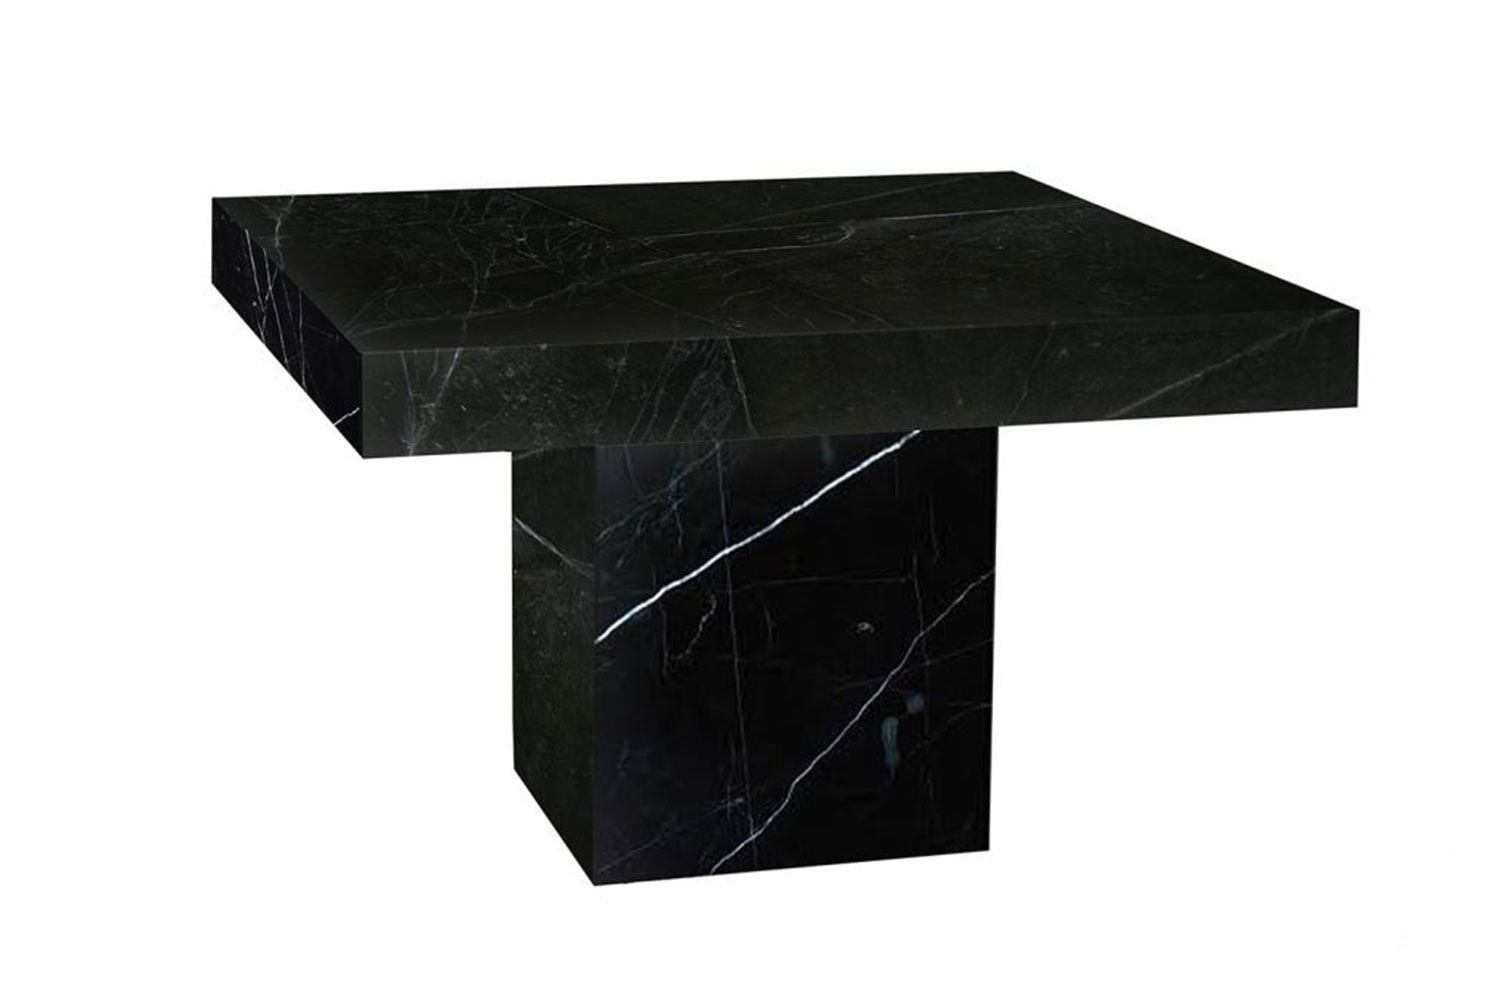 Noche2 Side Table by Collage